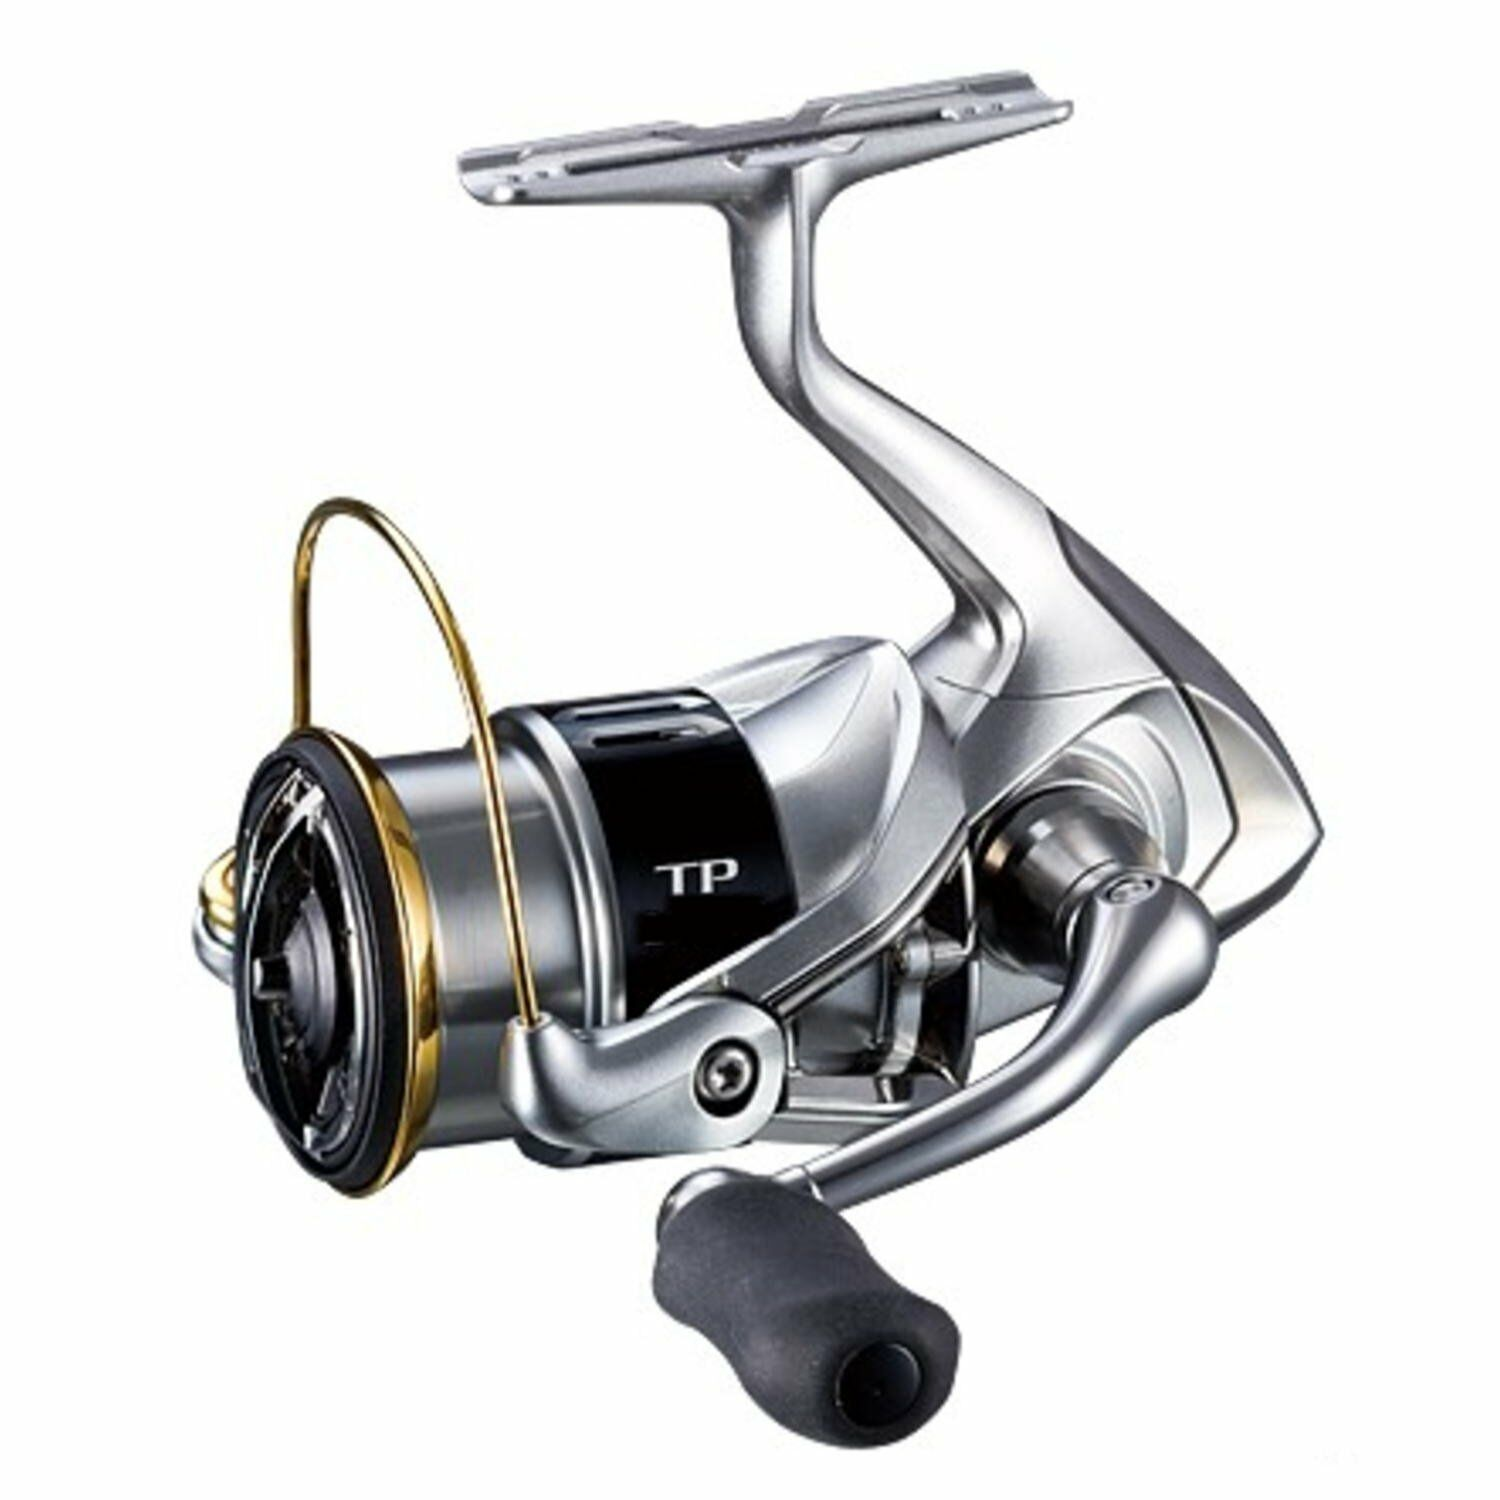 Shimano TWIN POWER C2000HGS new fishing spinning reel coil MADE IN Japan new.